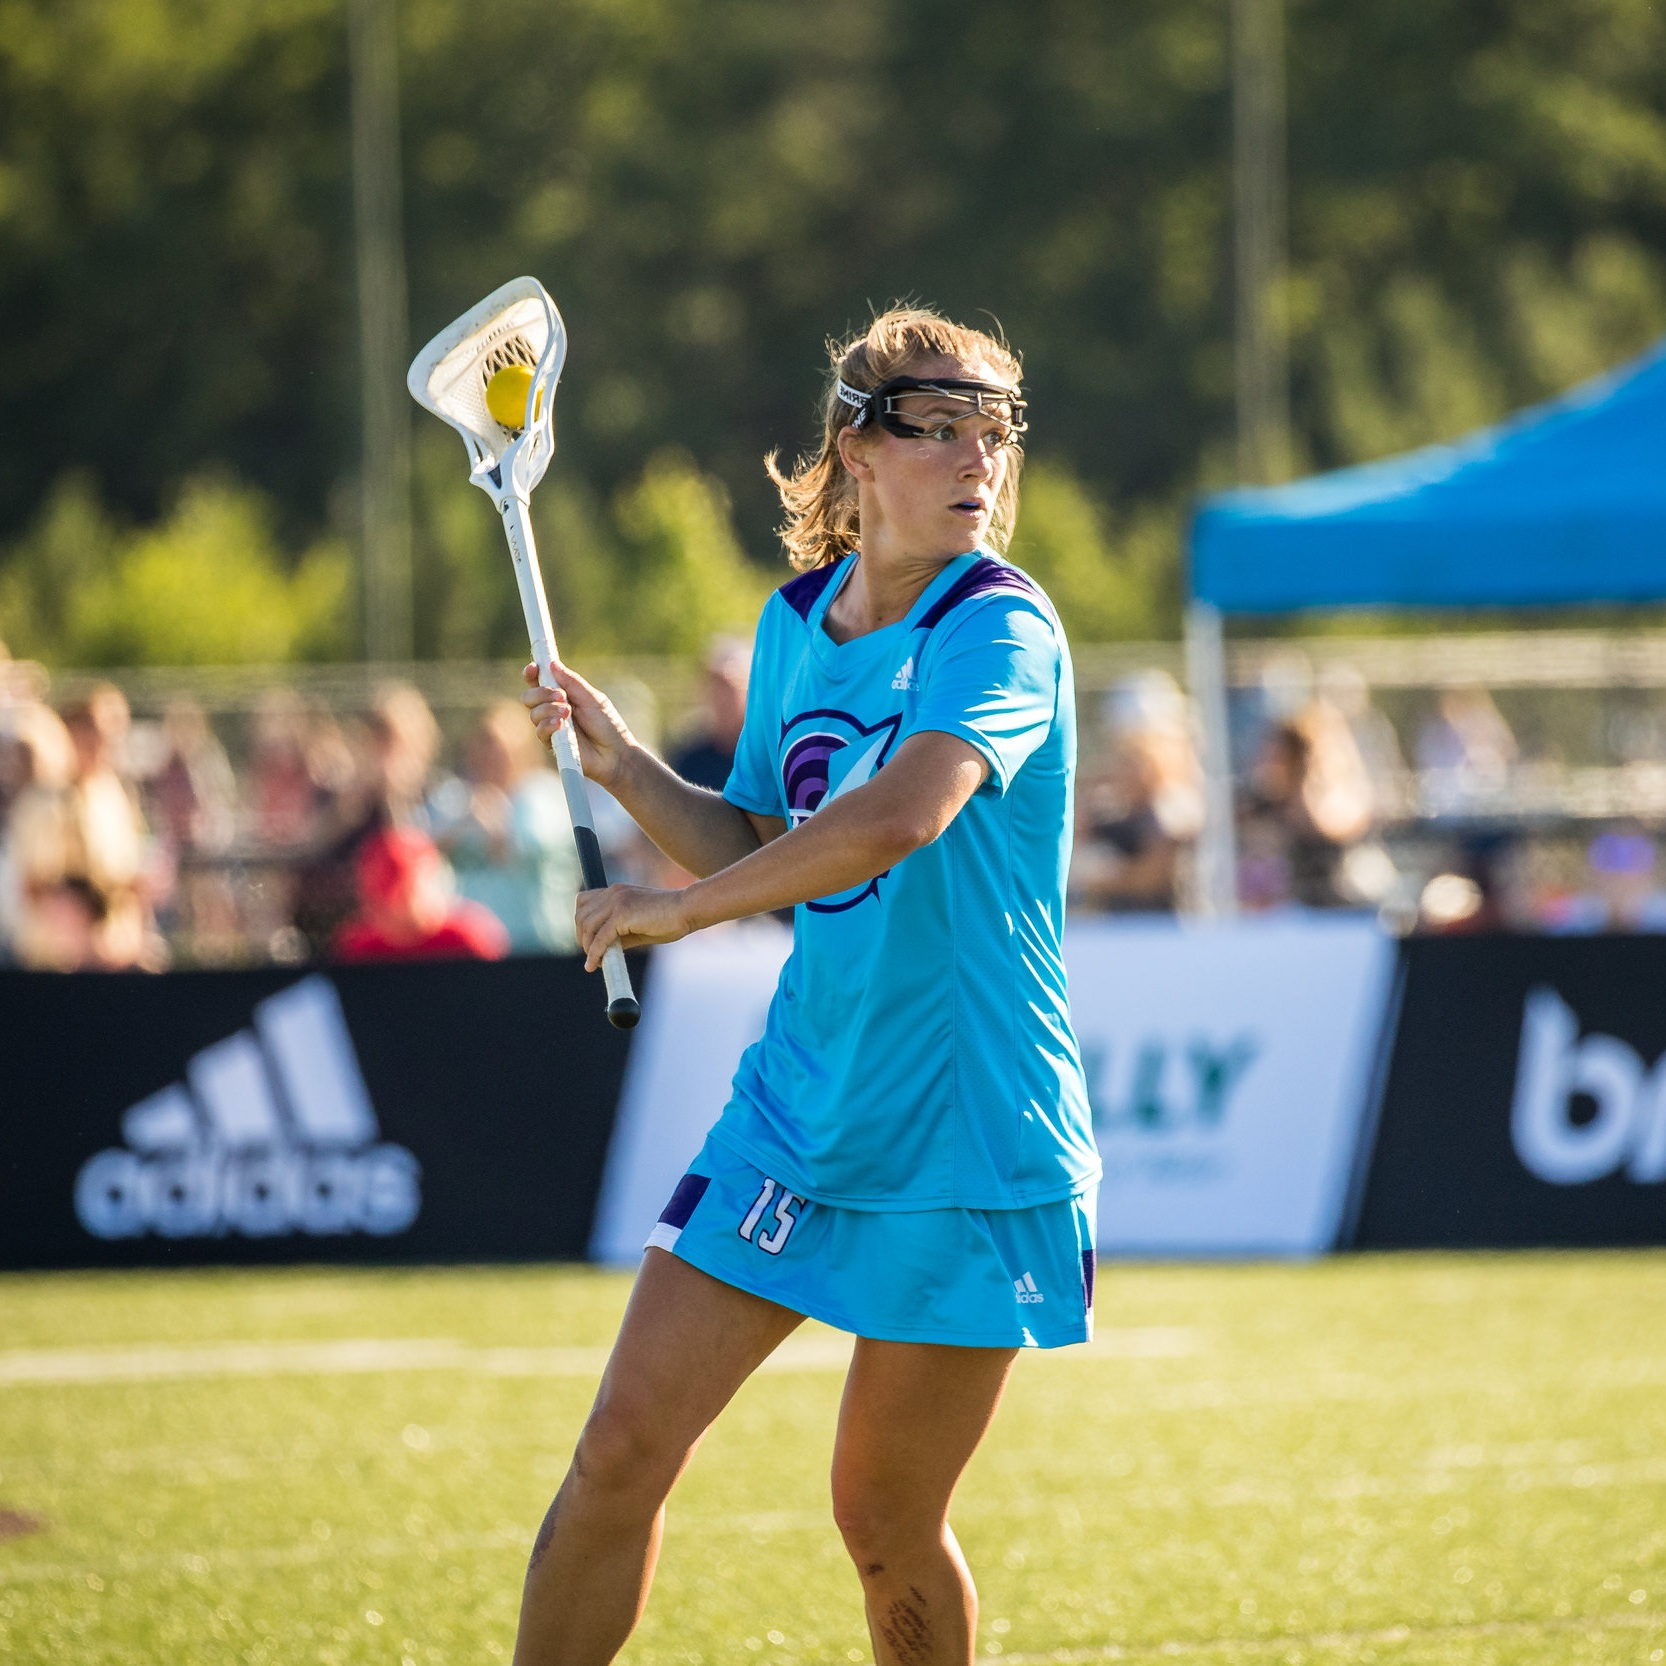 Zoe Stukenberg - Zoe played professional lacrosse for the WPLL Fight and for University of Maryland. She was also a high school biology teacher and this fall will start her first semester of medical school at the University of Michigan.Follow her:Twitter